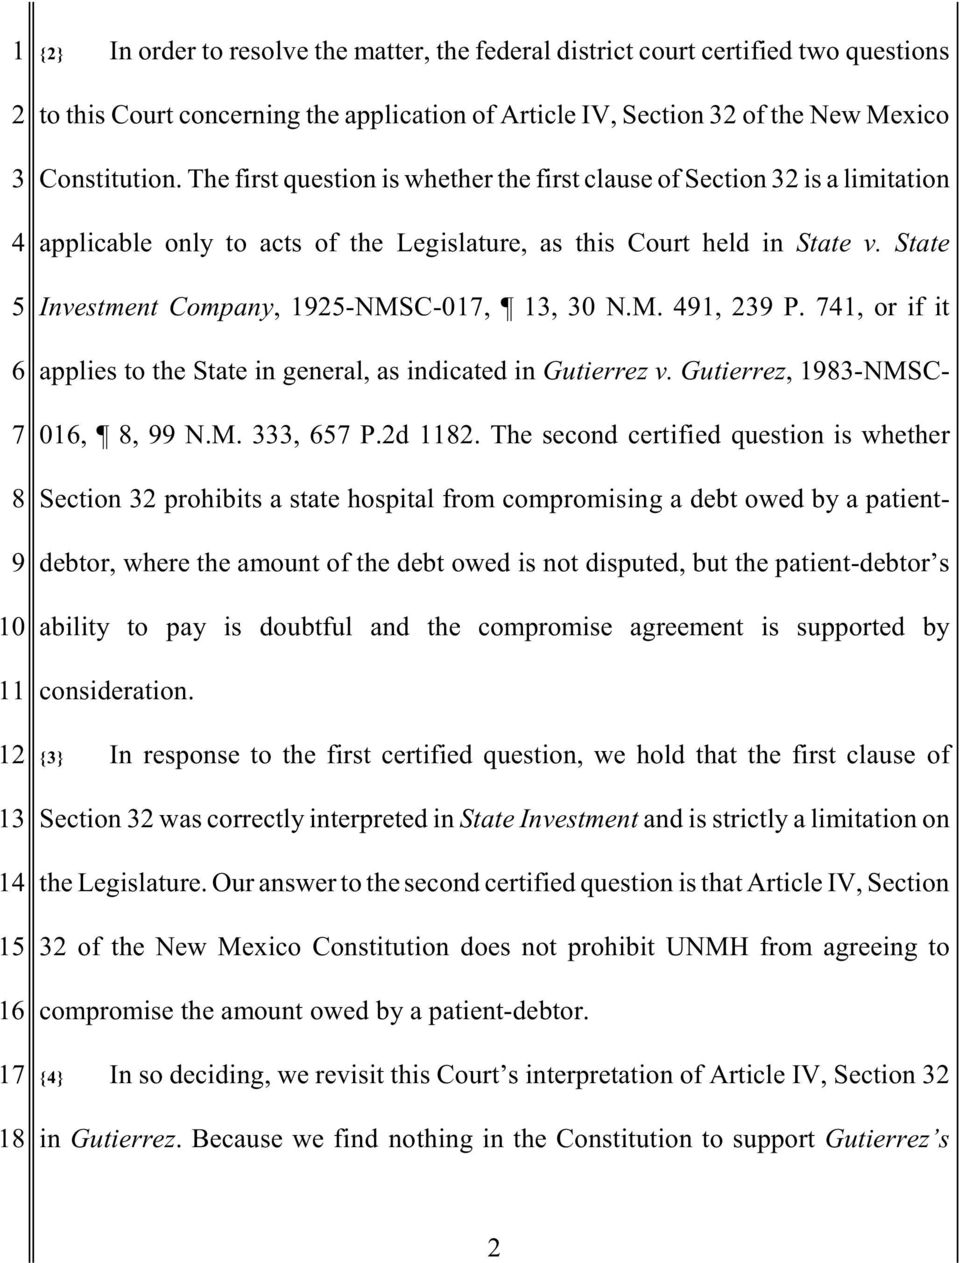 State 5 Investment Company, 1925-NMSC-017, 13, 30 N.M. 491, 239 P. 741, or if it 6 applies to the State in general, as indicated in Gutierrez v. Gutierrez, 1983-NMSC- 7 016, 8, 99 N.M. 333, 657 P.